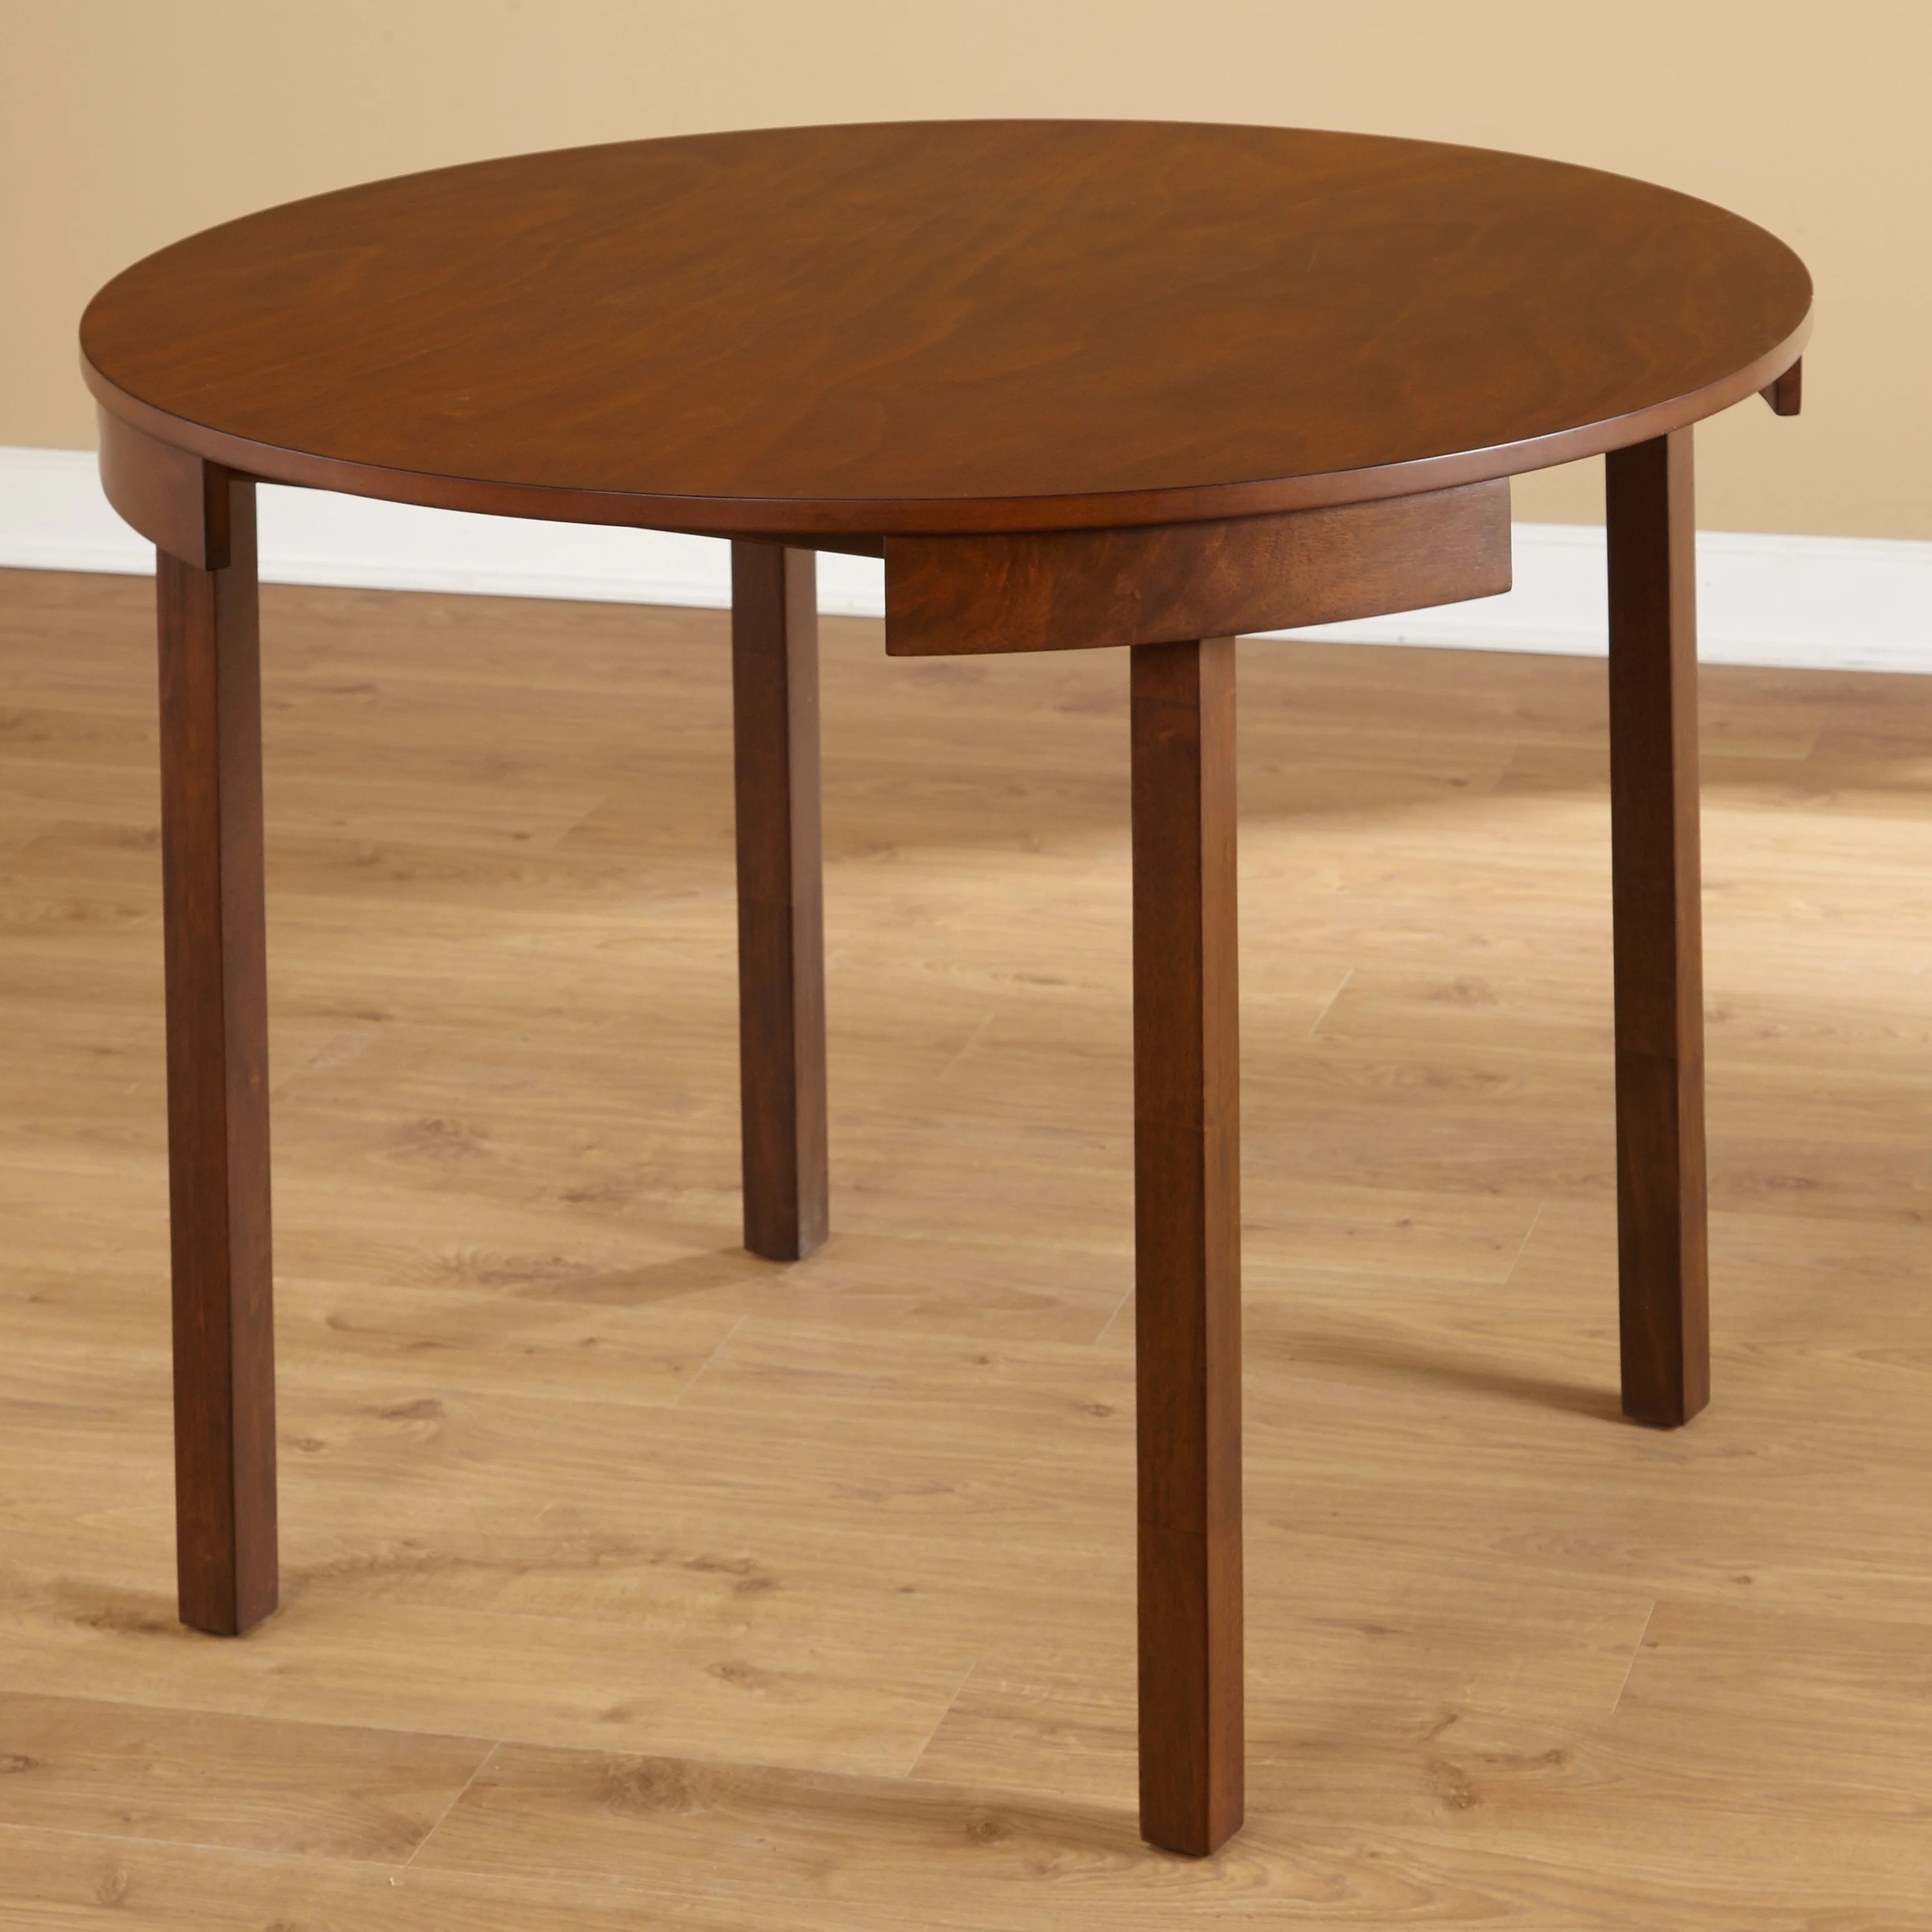 Small Tables For Apartments Compact Round Dining Set Table Wood Small Apartment